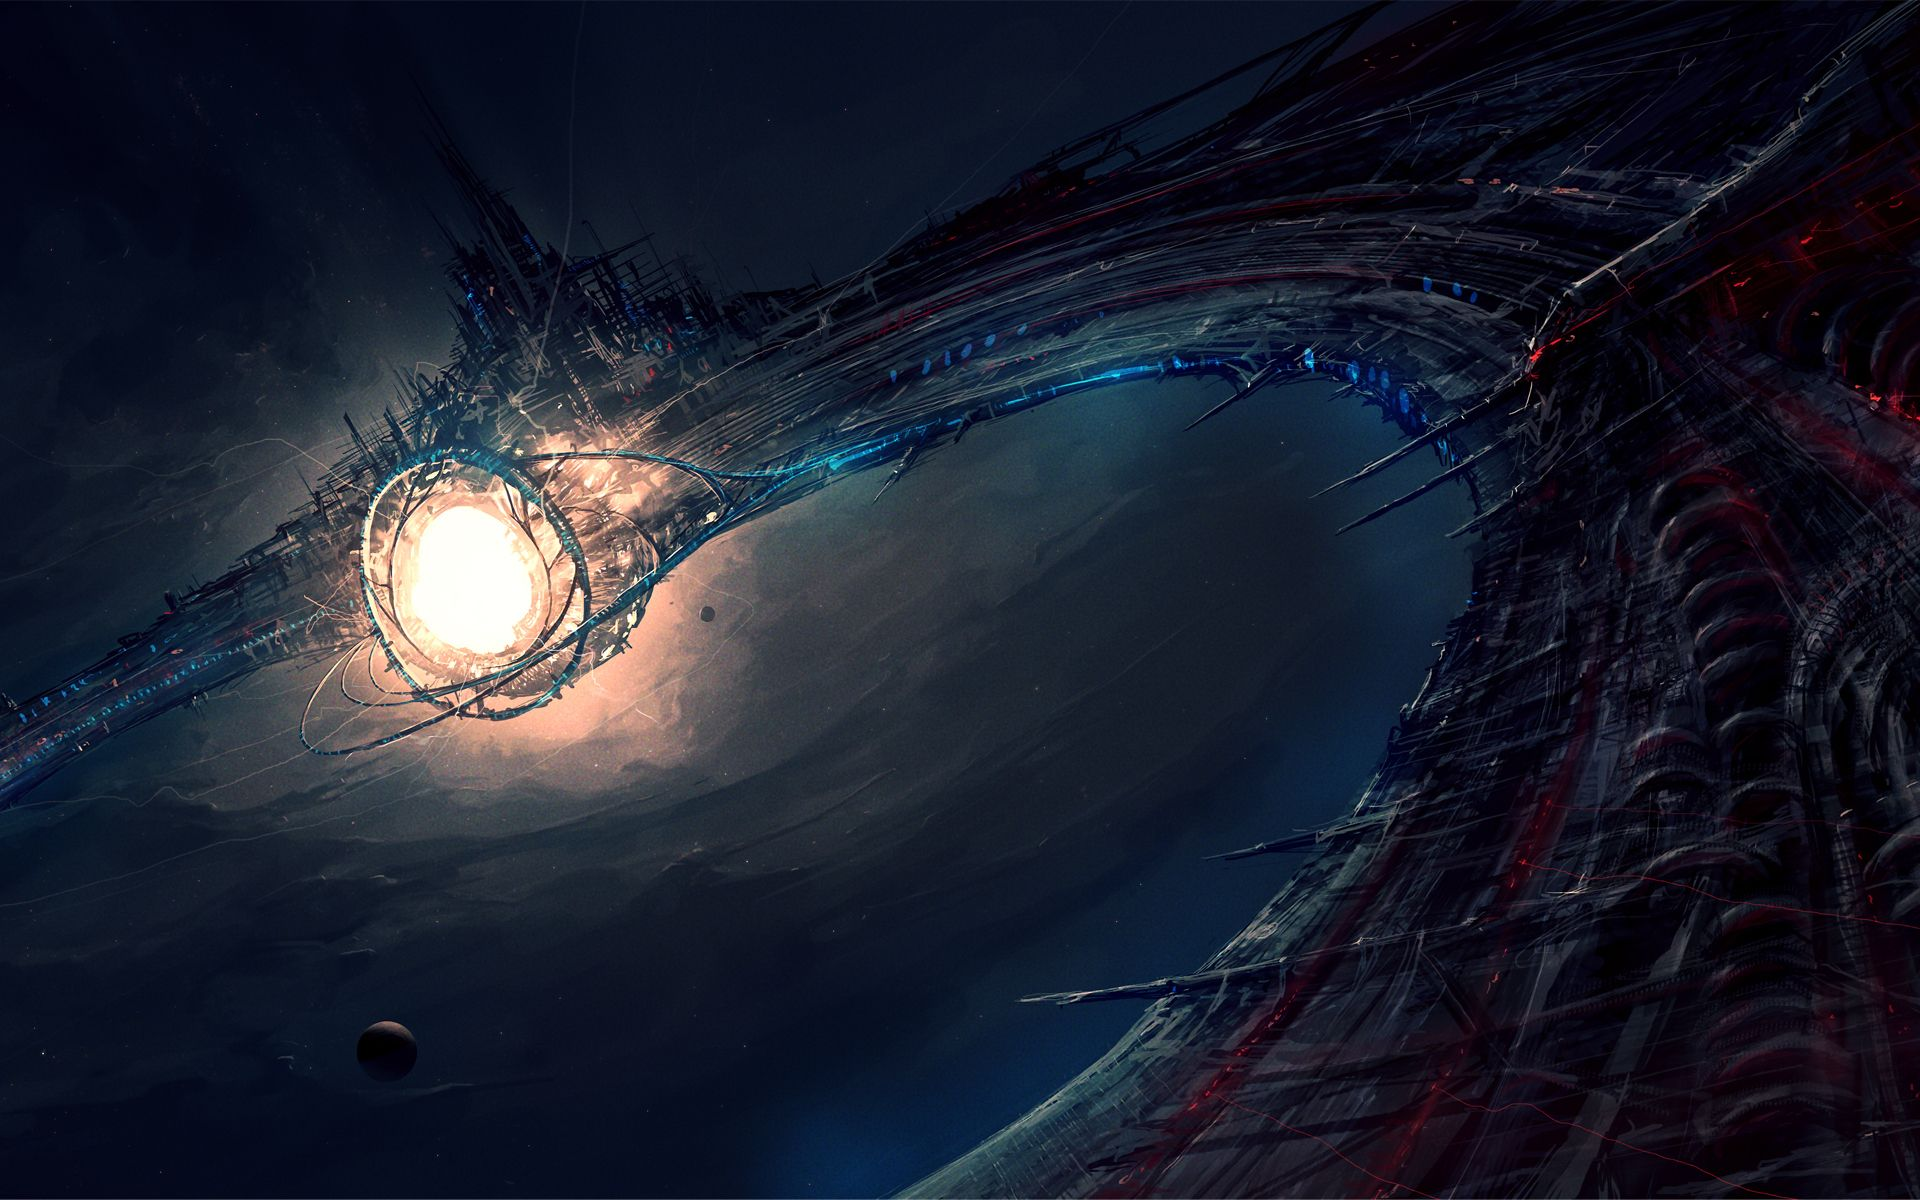 Wallpaper Vortex Of Energy In Deep Space Free Desktop Background